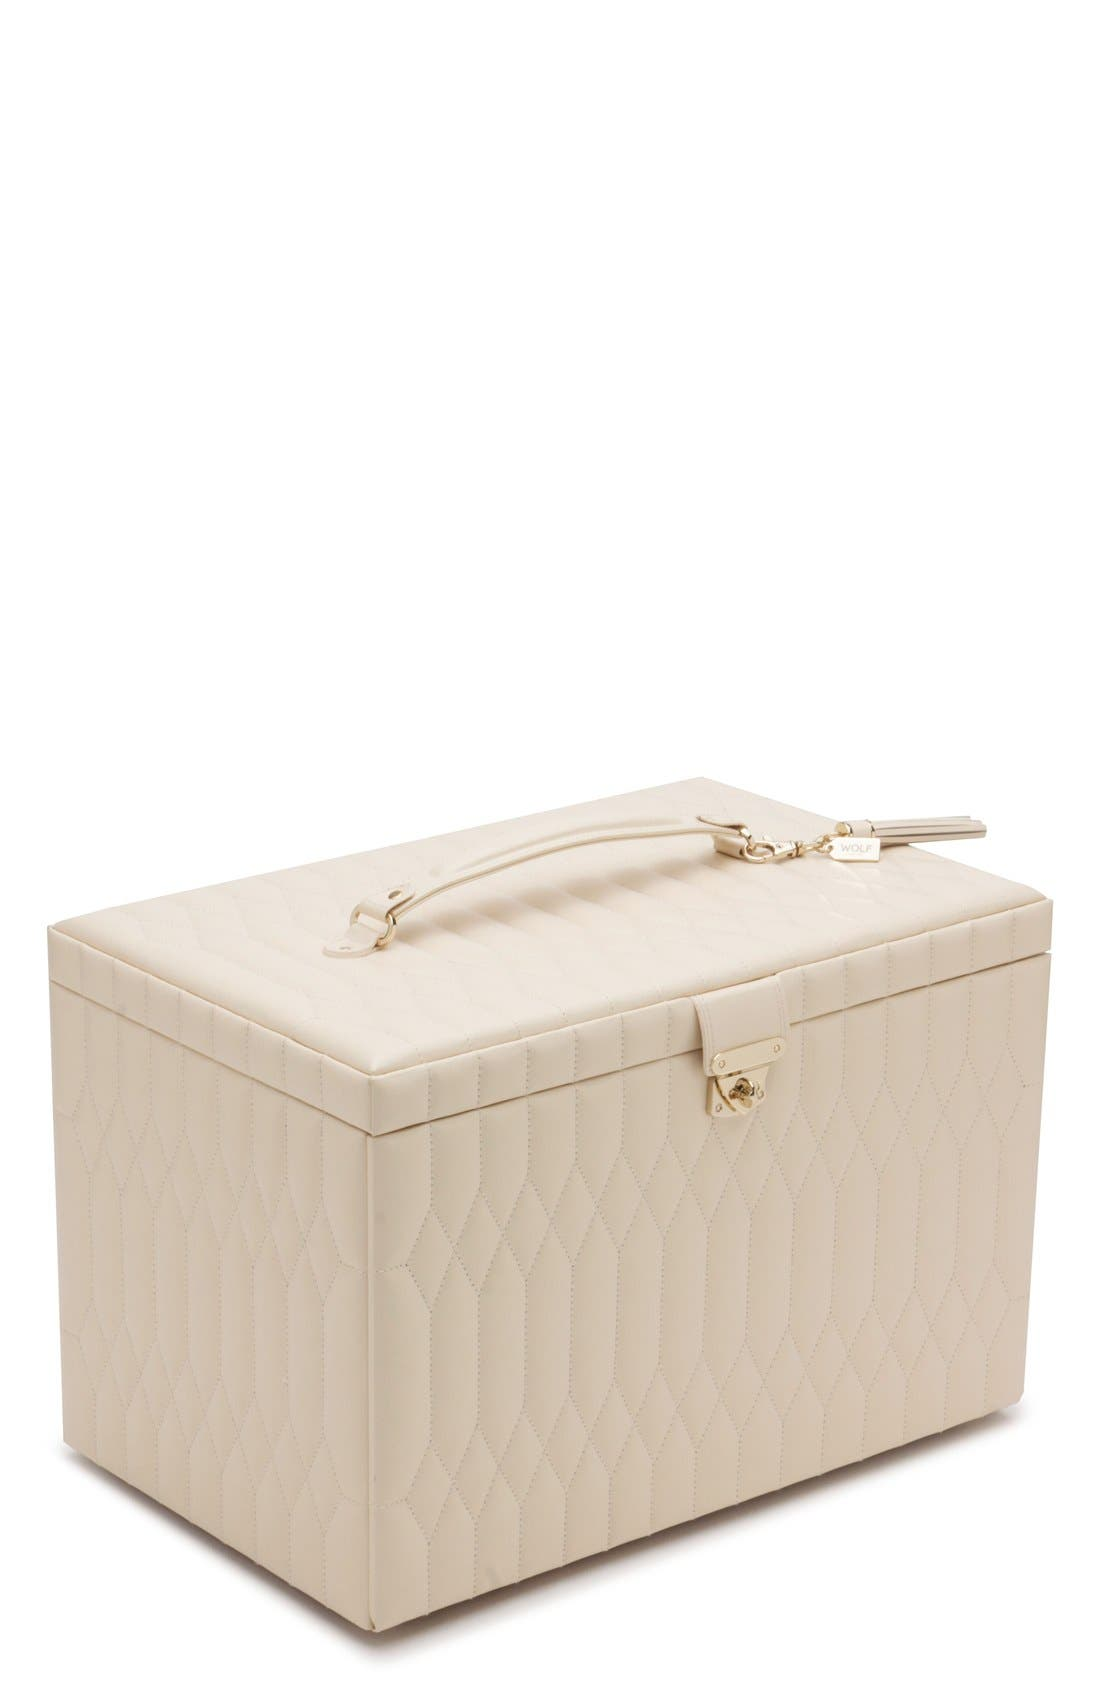 Caroline Jewelry Case,                             Main thumbnail 1, color,                             Ivory